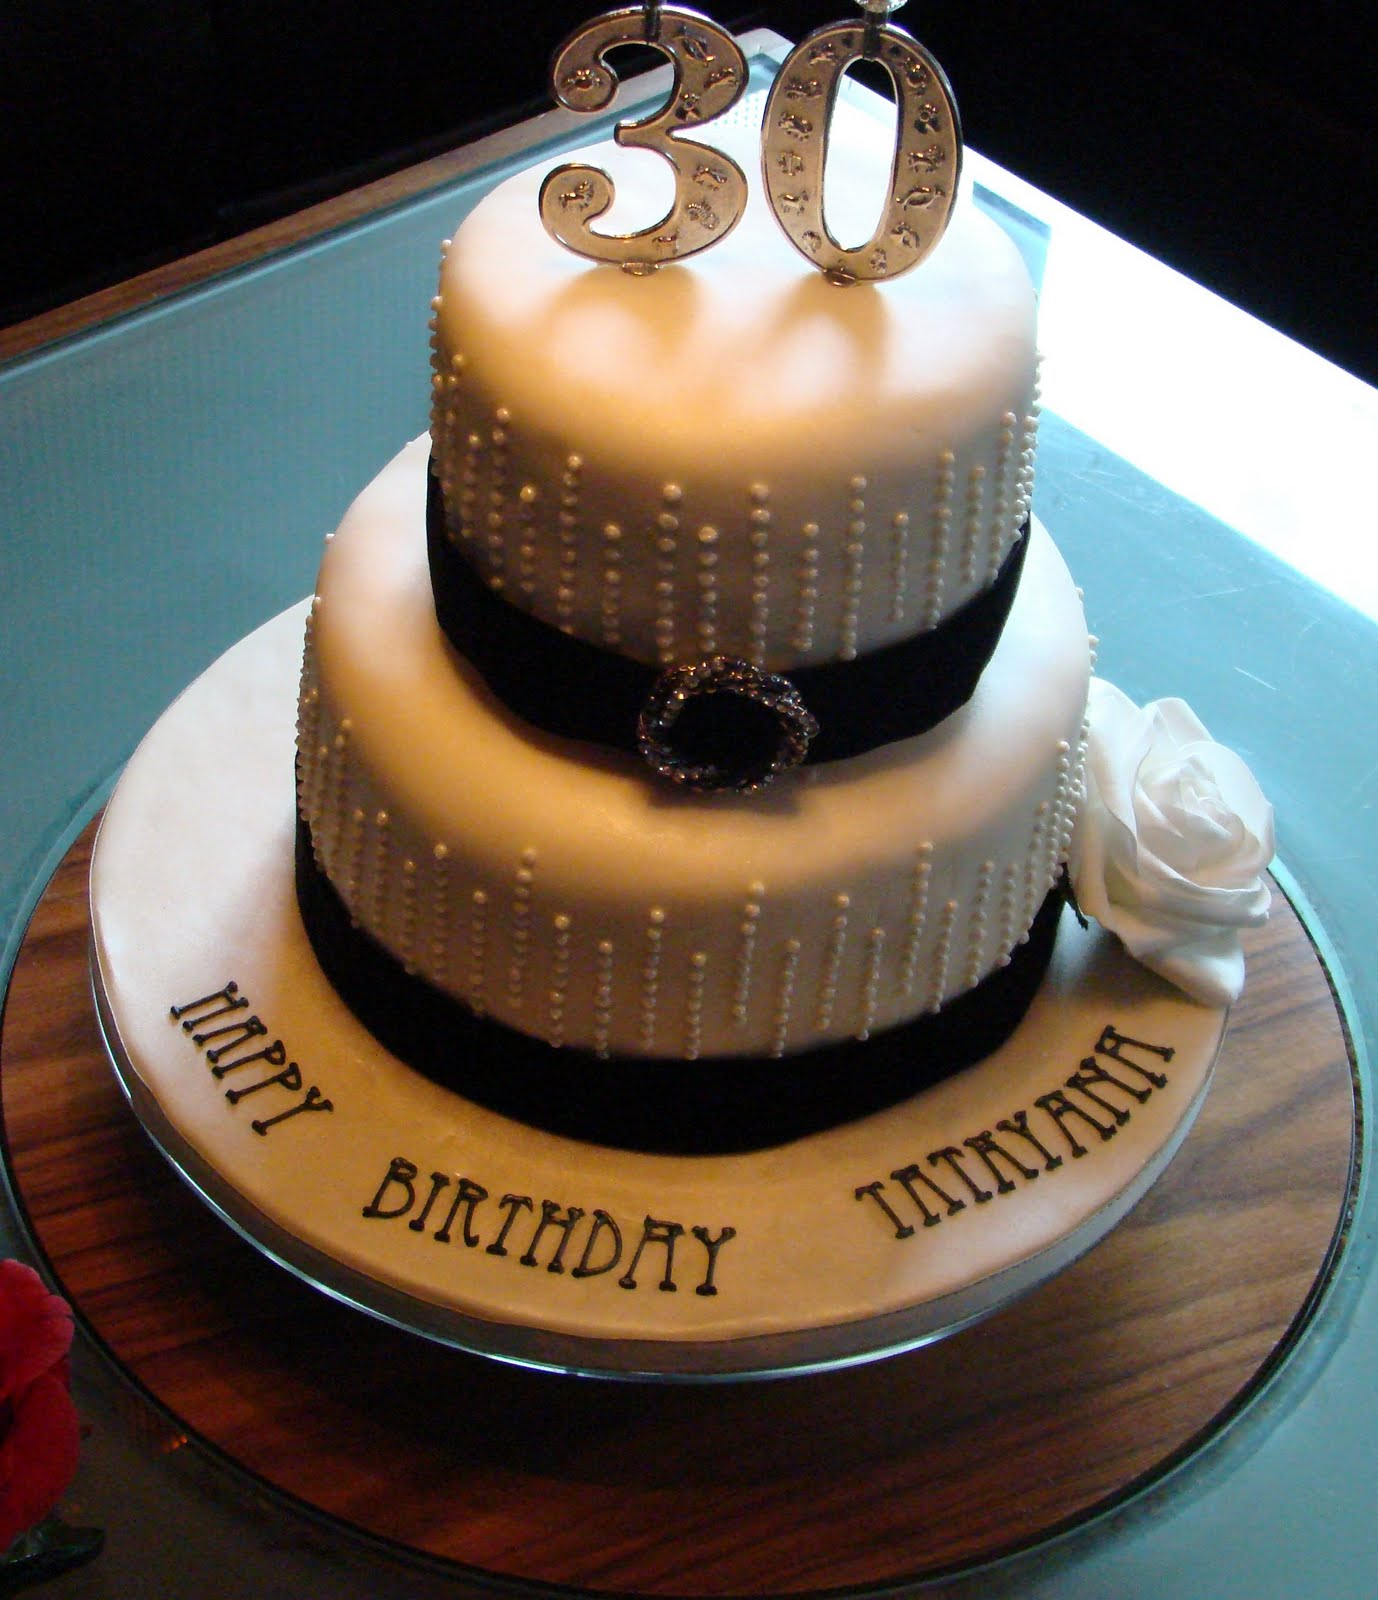 The Cake Was Embellished With Pipped Pearls Black Velvet Ribbon And Diamante Broach Perfect For An Elegant Celebration